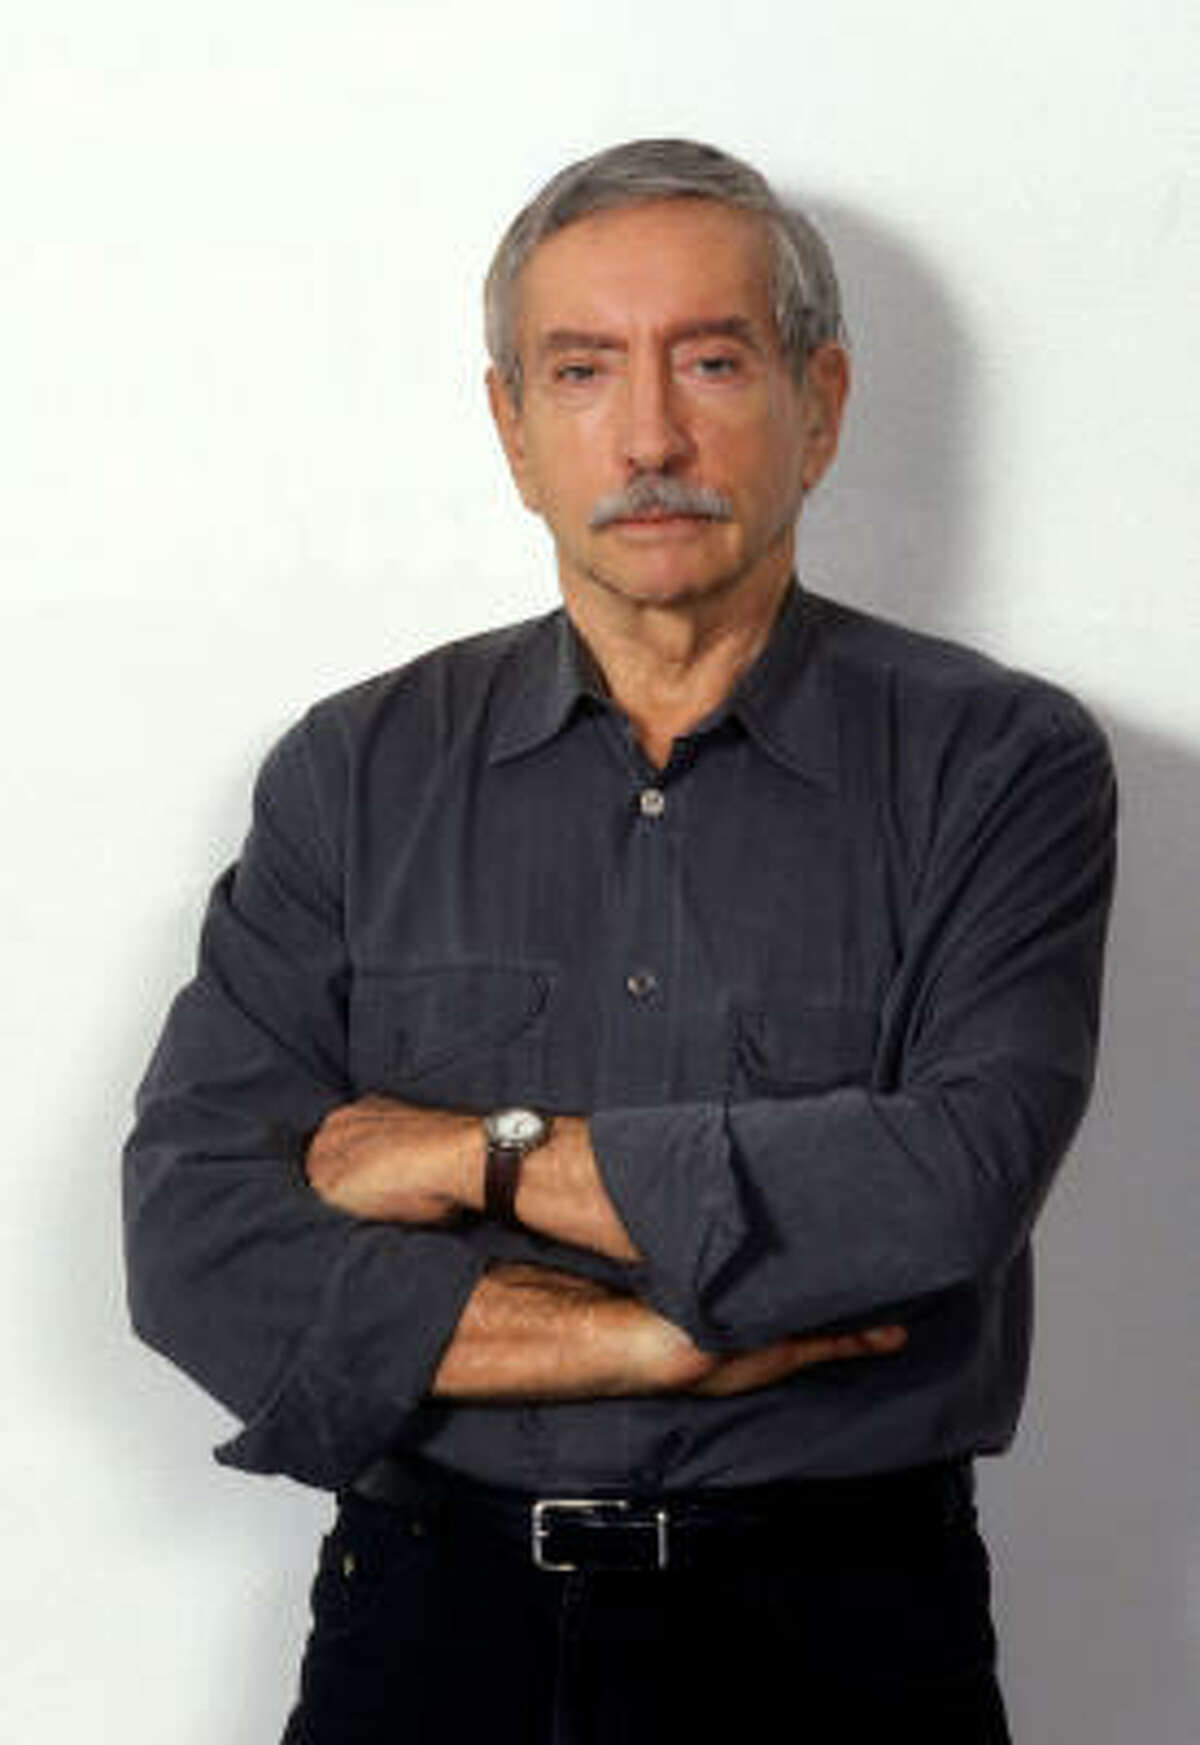 Playwright Edward Albee, who is famous for such plays as Who's Afraid of Virginia Woolf? and Three Tall Women, taught at UH each spring semester from 1989 to 2003.